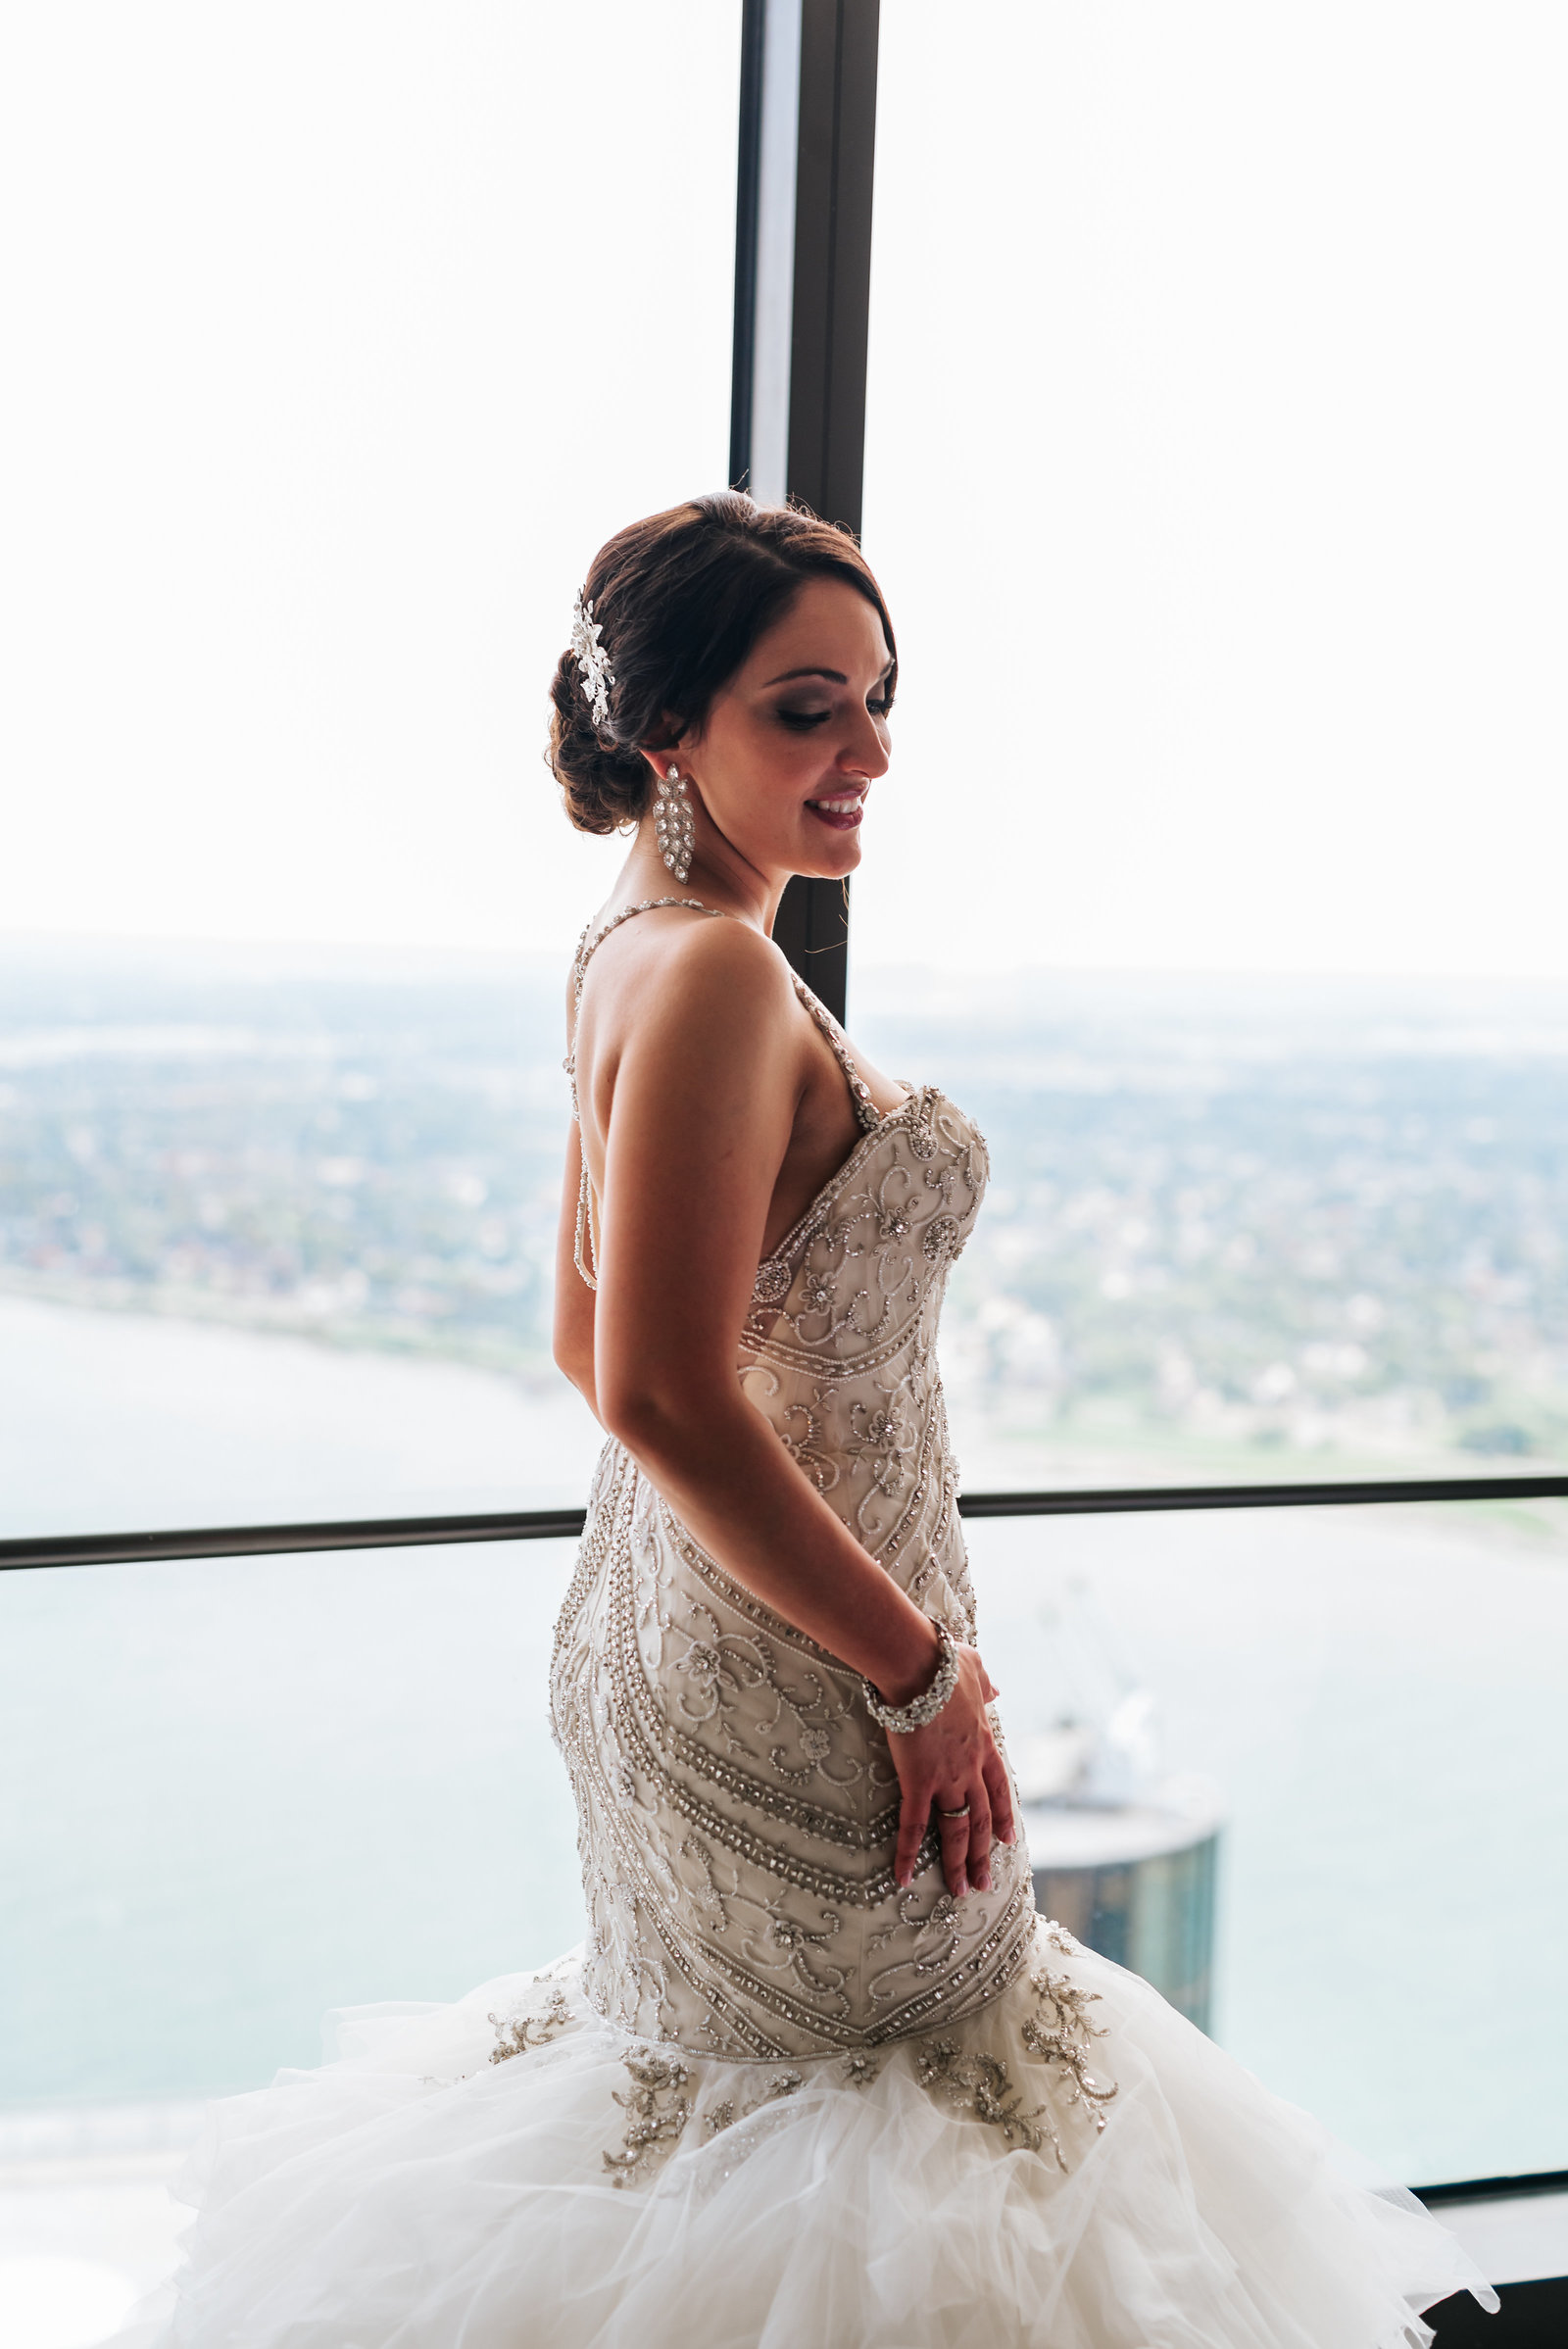 MichiganWeddingPhotographer, Ren Cen Wedding, Renaissance Center Wedding